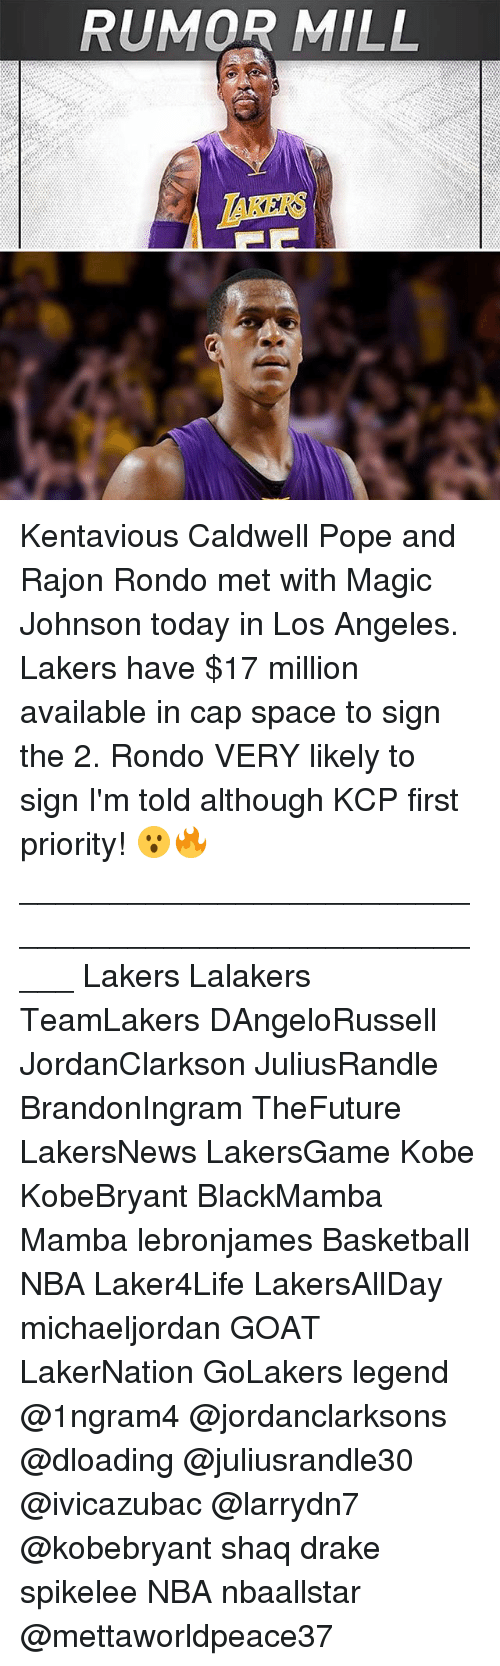 Basketball, Drake, and Kentavious Caldwell-Pope: RUMOR MILL  TAKERS Kentavious Caldwell Pope and Rajon Rondo met with Magic Johnson today in Los Angeles. Lakers have $17 million available in cap space to sign the 2. Rondo VERY likely to sign I'm told although KCP first priority! 😮🔥 _____________________________________________________ Lakers Lalakers TeamLakers DAngeloRussell JordanClarkson JuliusRandle BrandonIngram TheFuture LakersNews LakersGame Kobe KobeBryant BlackMamba Mamba lebronjames Basketball NBA Laker4Life LakersAllDay michaeljordan GOAT LakerNation GoLakers legend @1ngram4 @jordanclarksons @dloading @juliusrandle30 @ivicazubac @larrydn7 @kobebryant shaq drake spikelee NBA nbaallstar @mettaworldpeace37